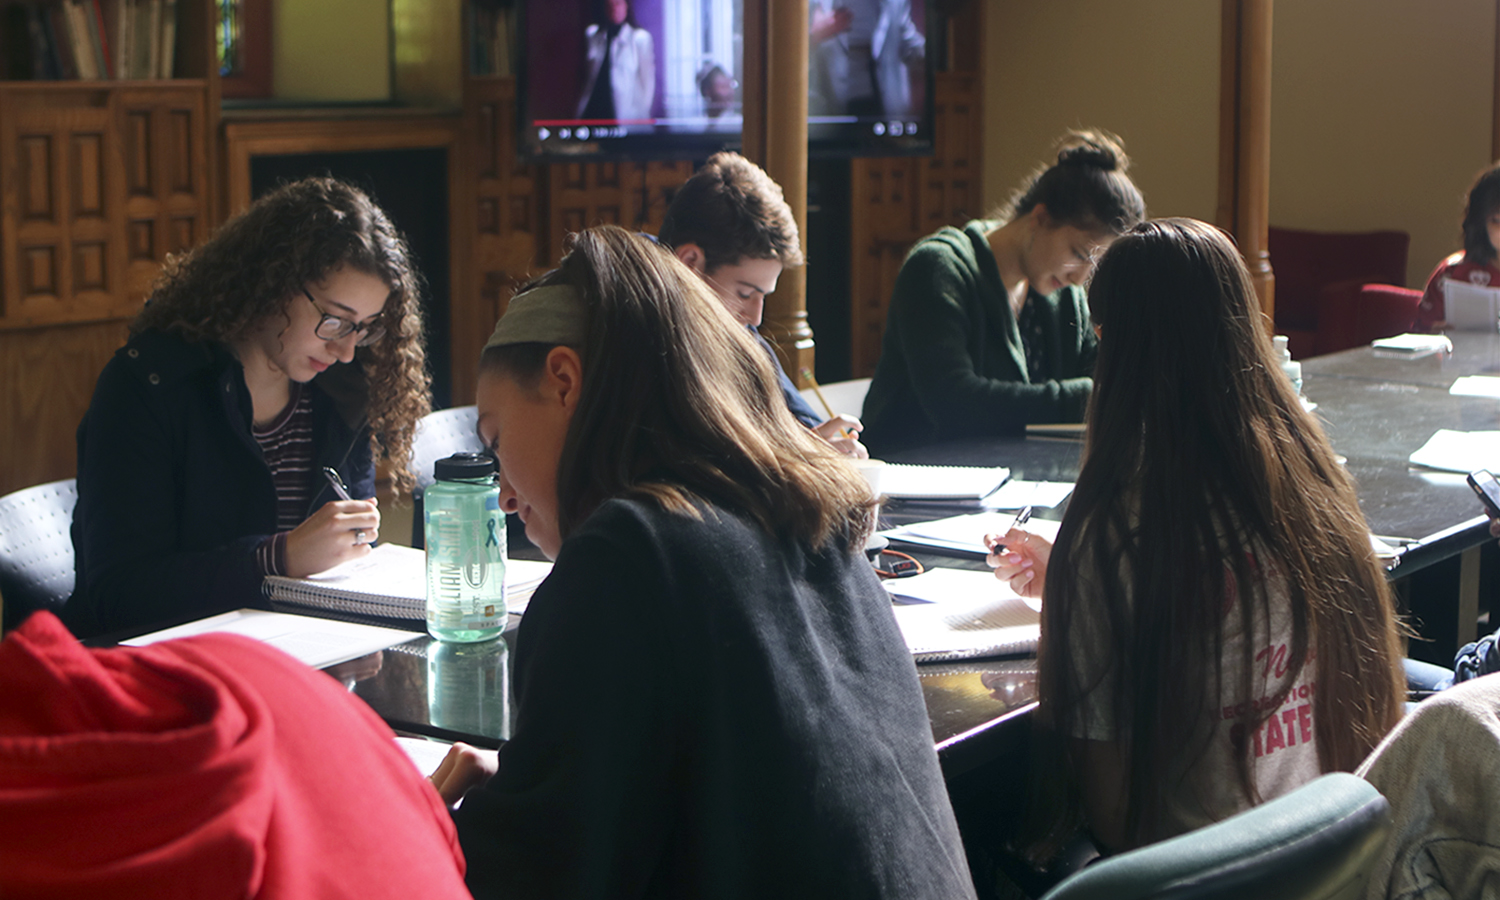 Lilly Shea '20 works on a writing assignment as part of a creative non-fiction workshop led by graduate students from the Creative Writing Program at University of Iowa .